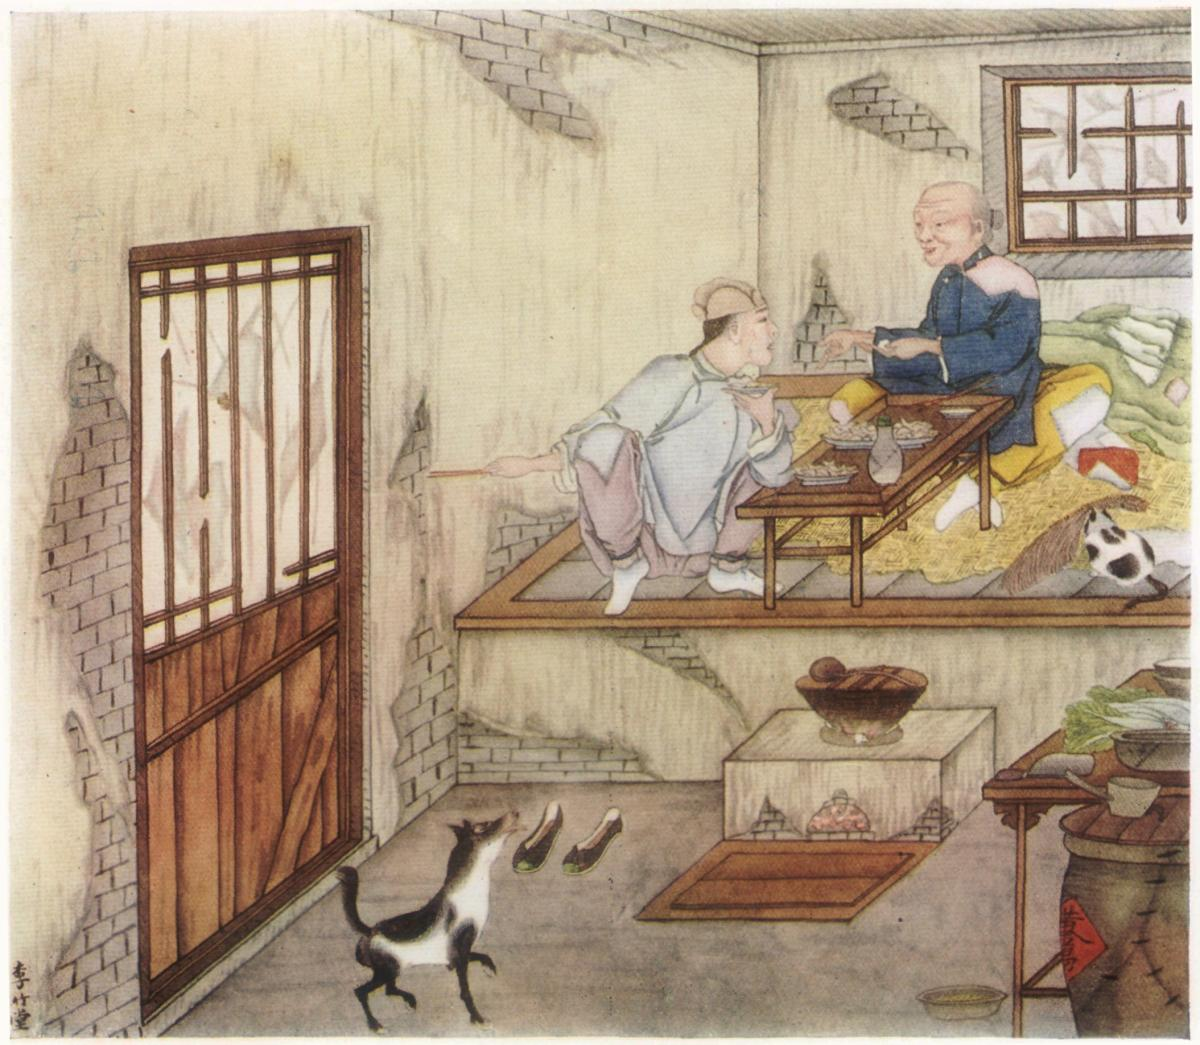 Vintage illustration of Chinese bedtime story The Golden Beetle